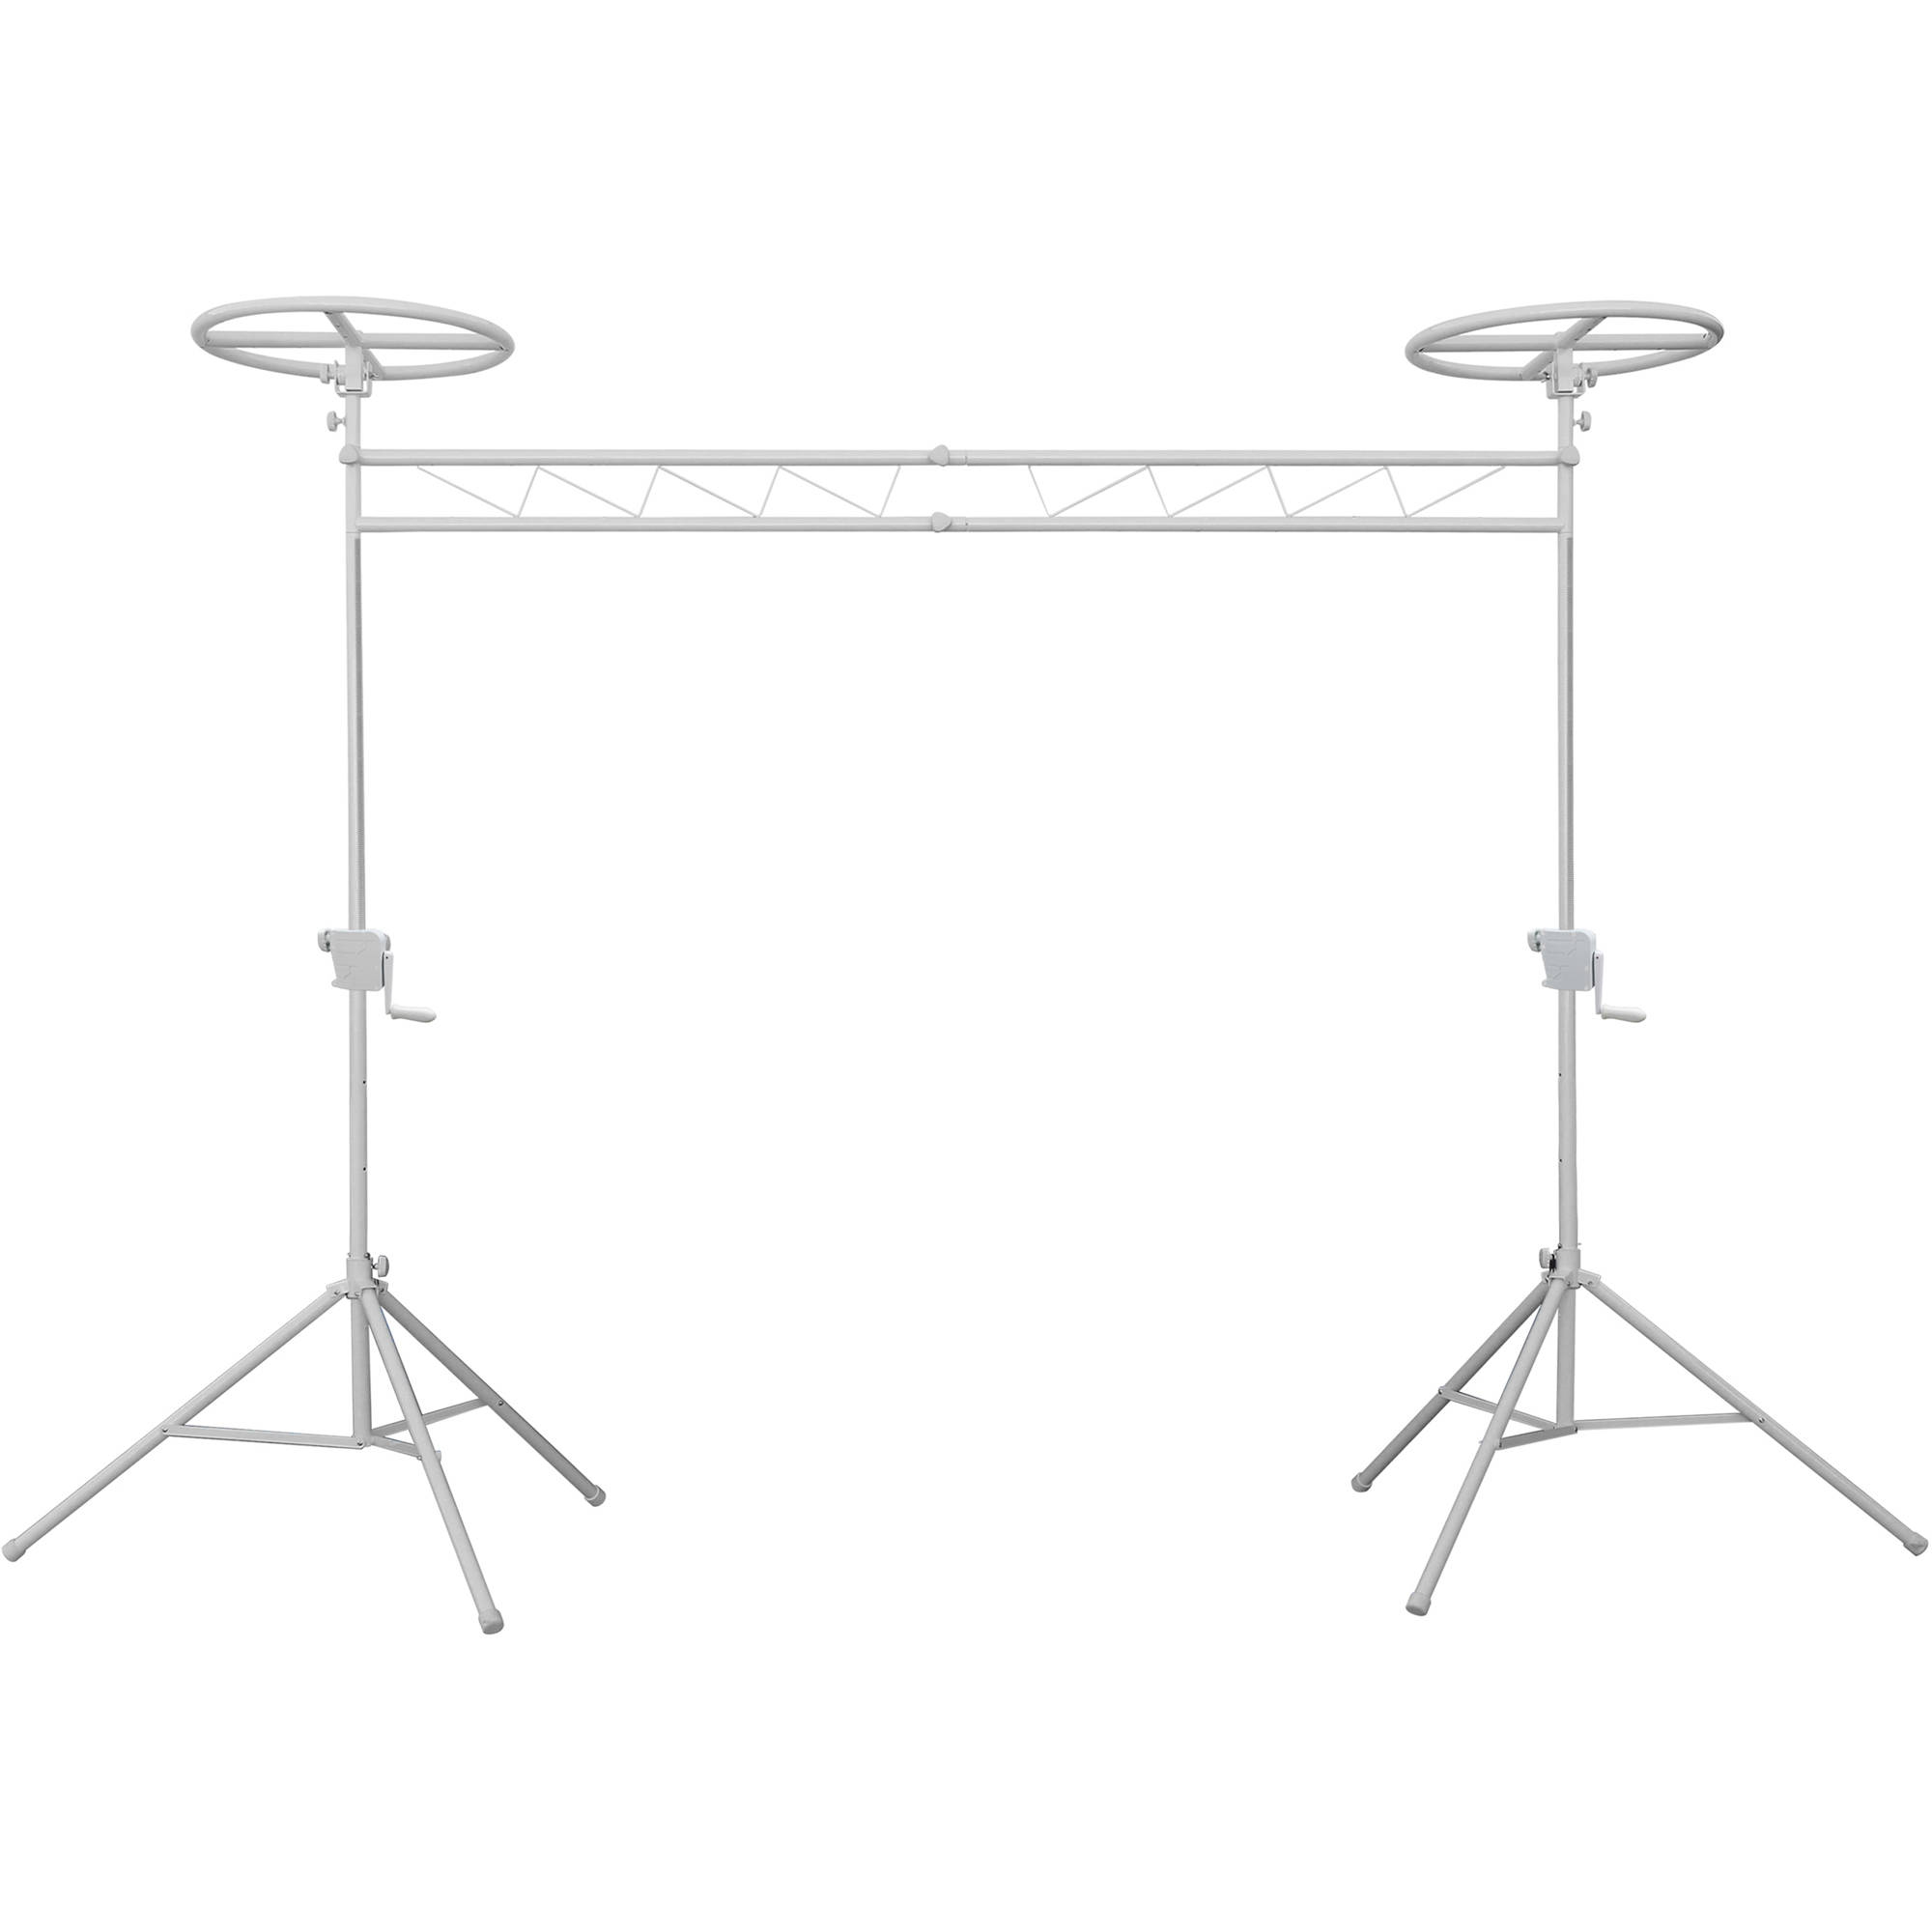 Odyssey Innovative Designs Mobile Lighting Truss System with Adjustable on